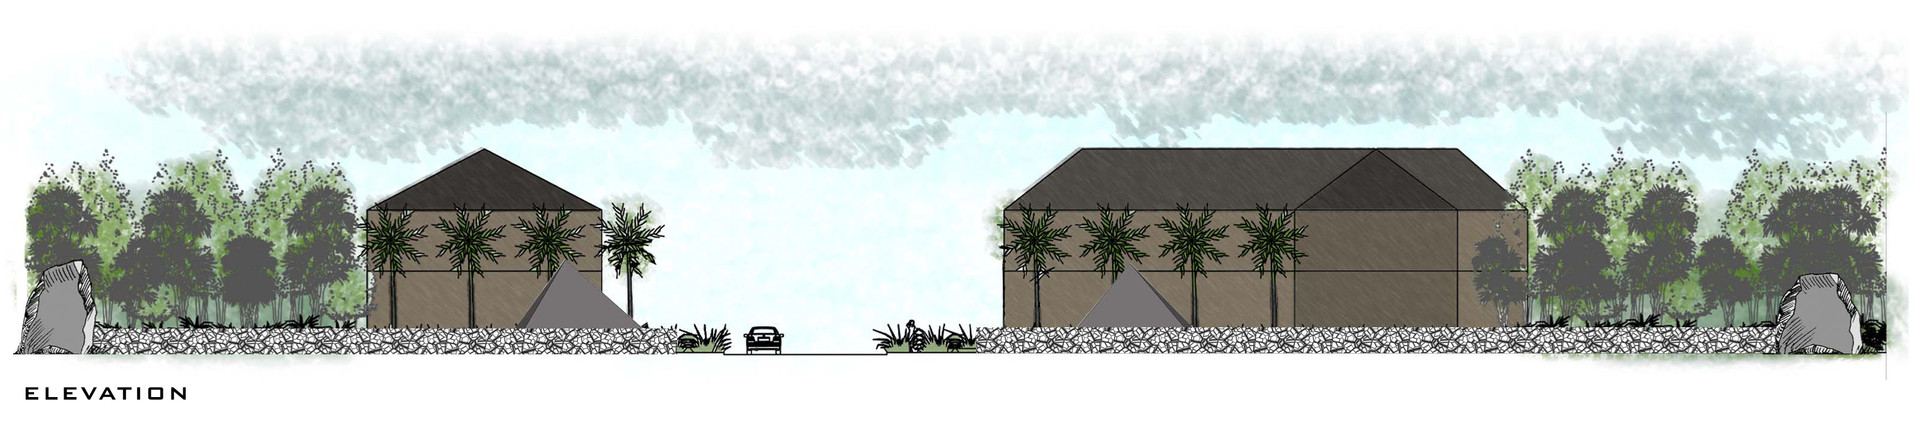 Resort Elevation